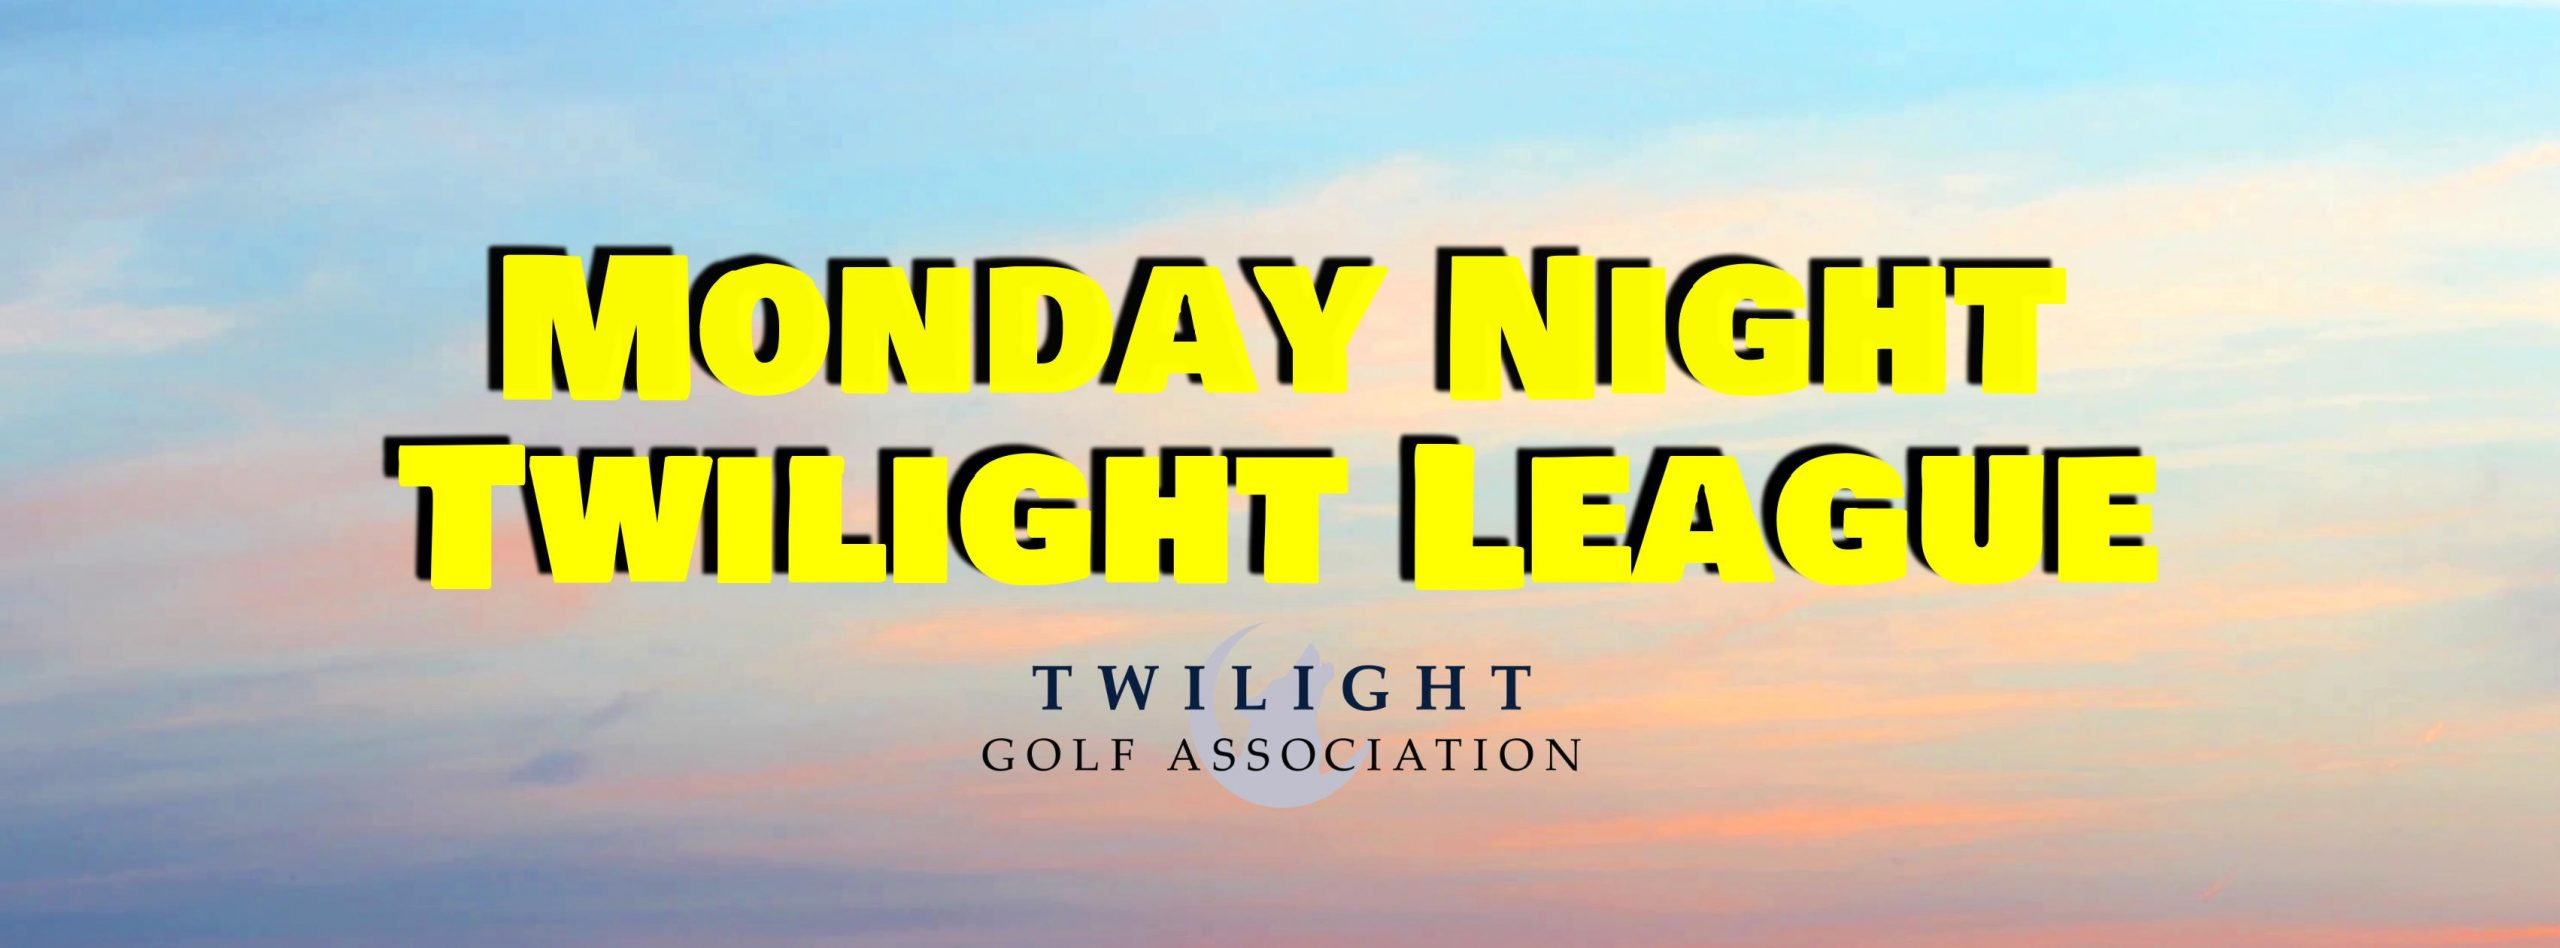 Monday Twilight League at Carroll Park Golf course